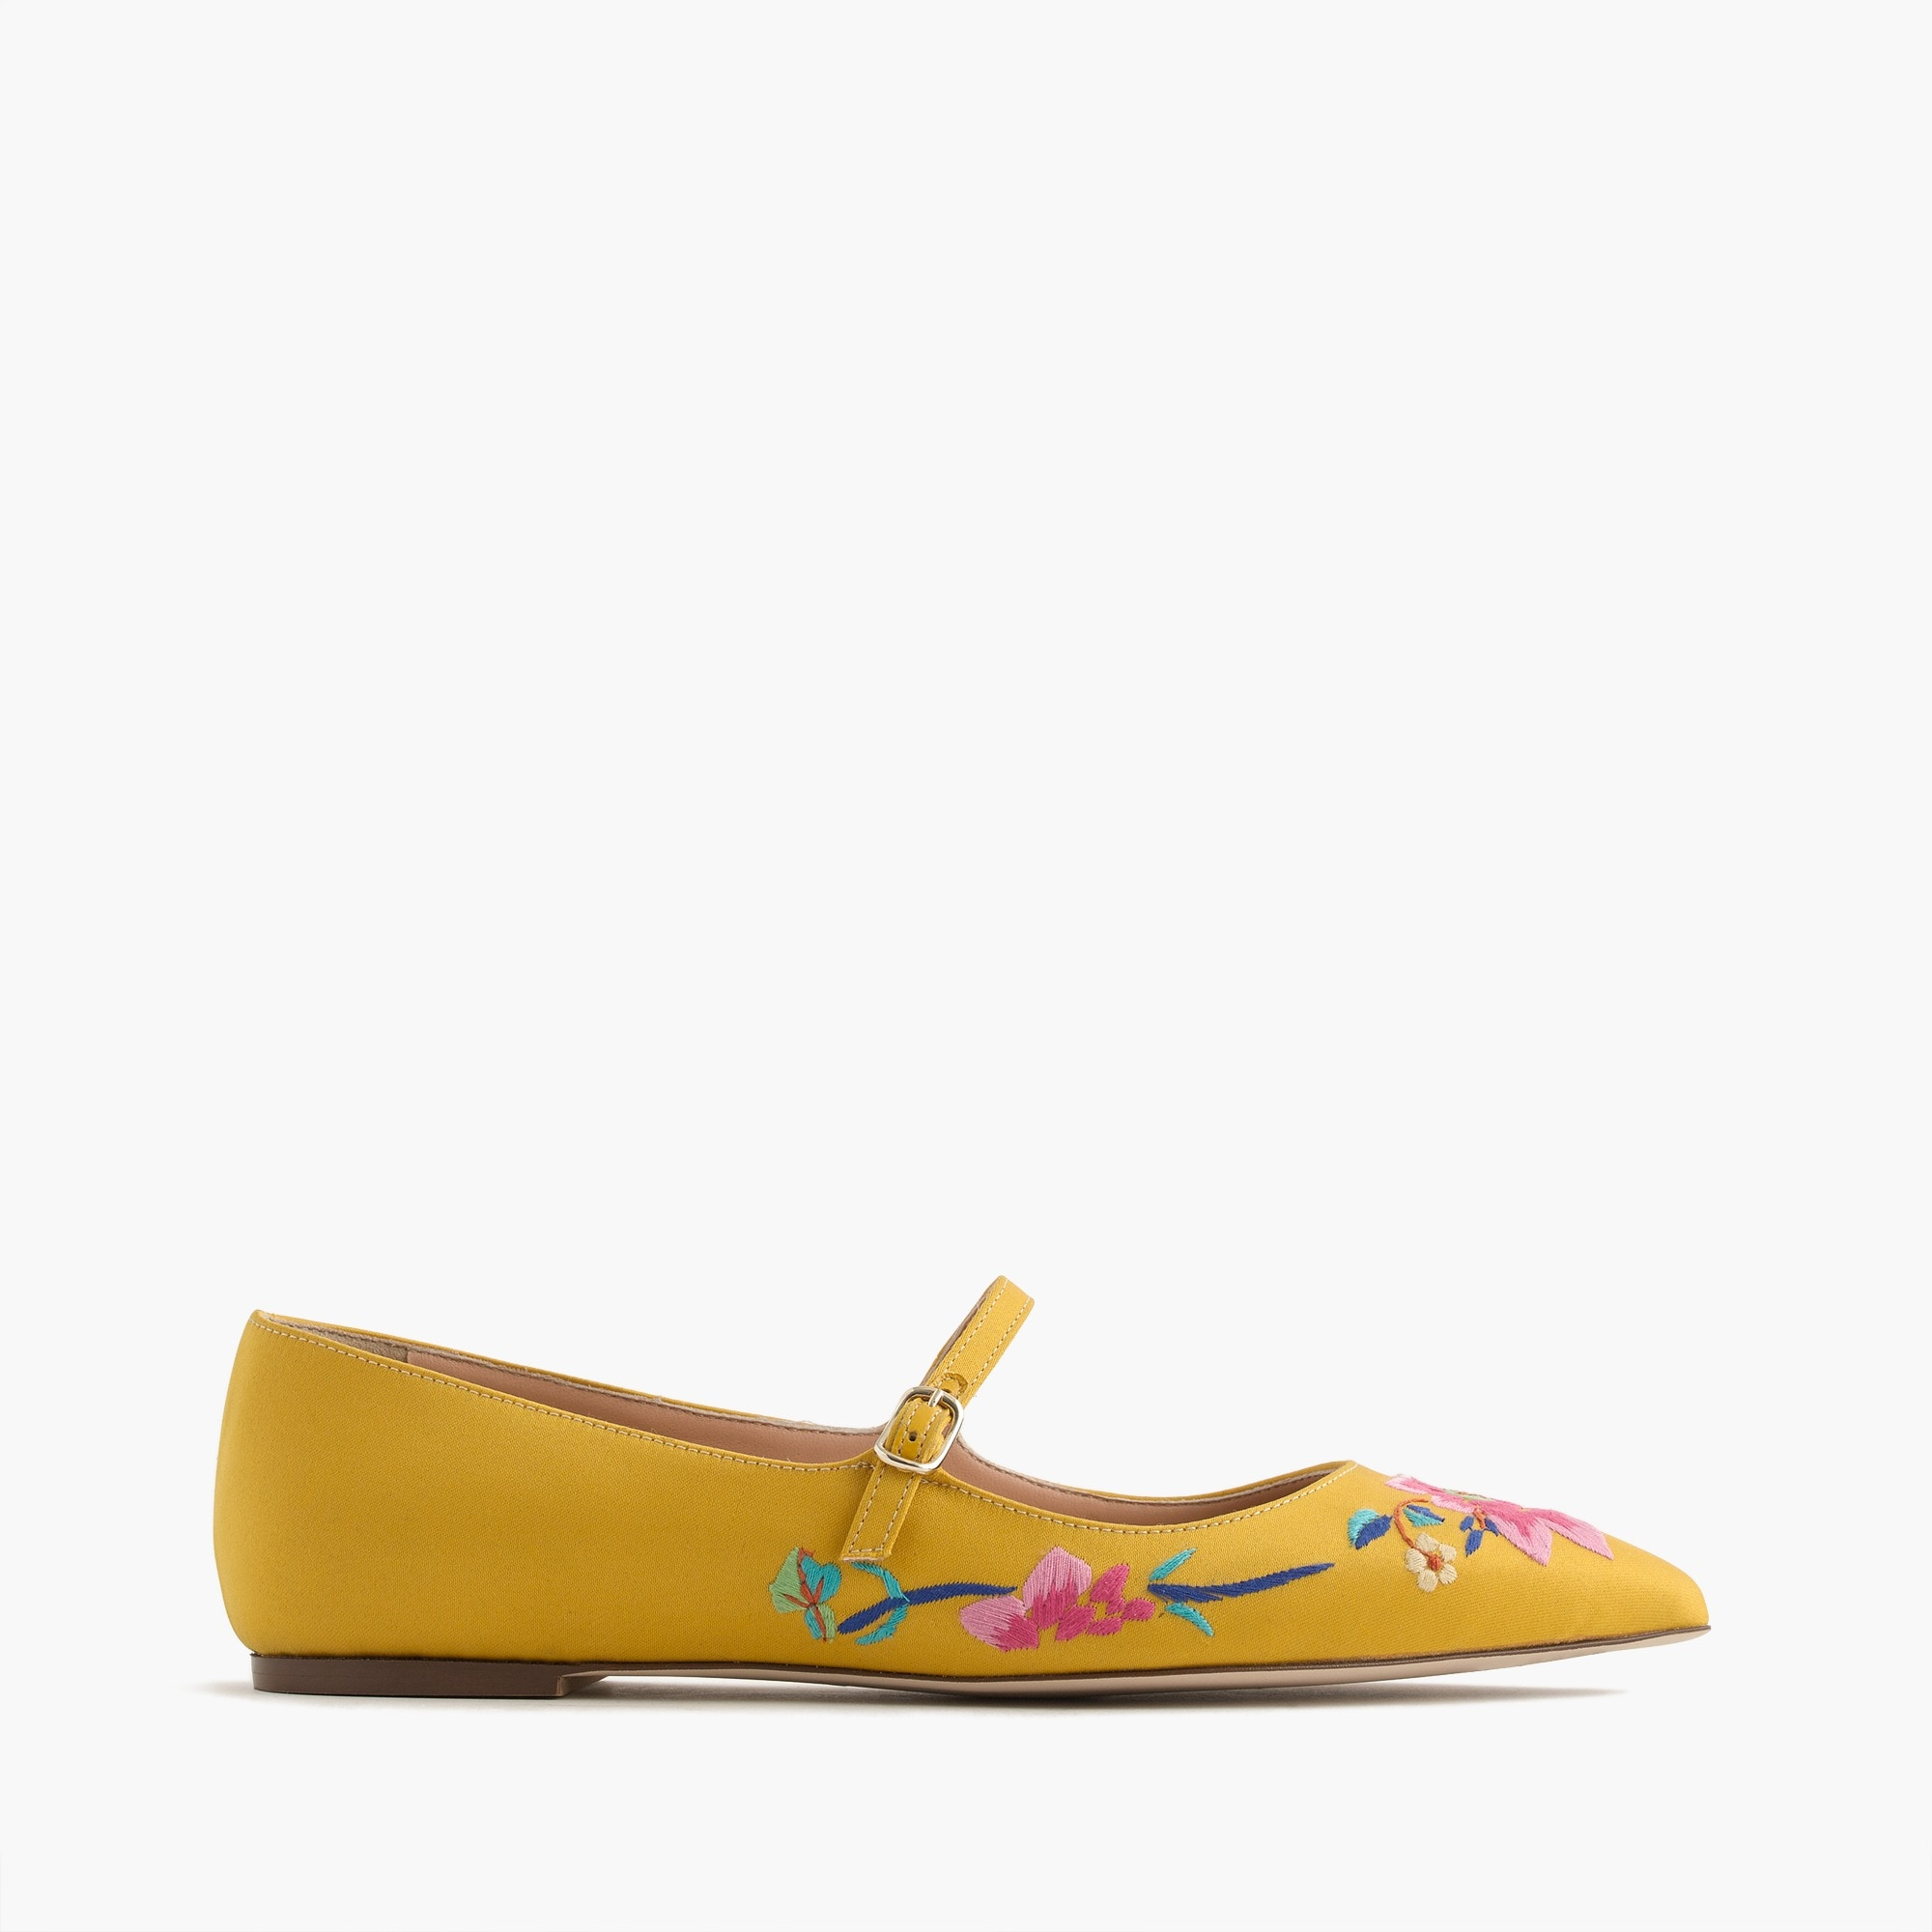 Embroidered satin Mary Jane flat